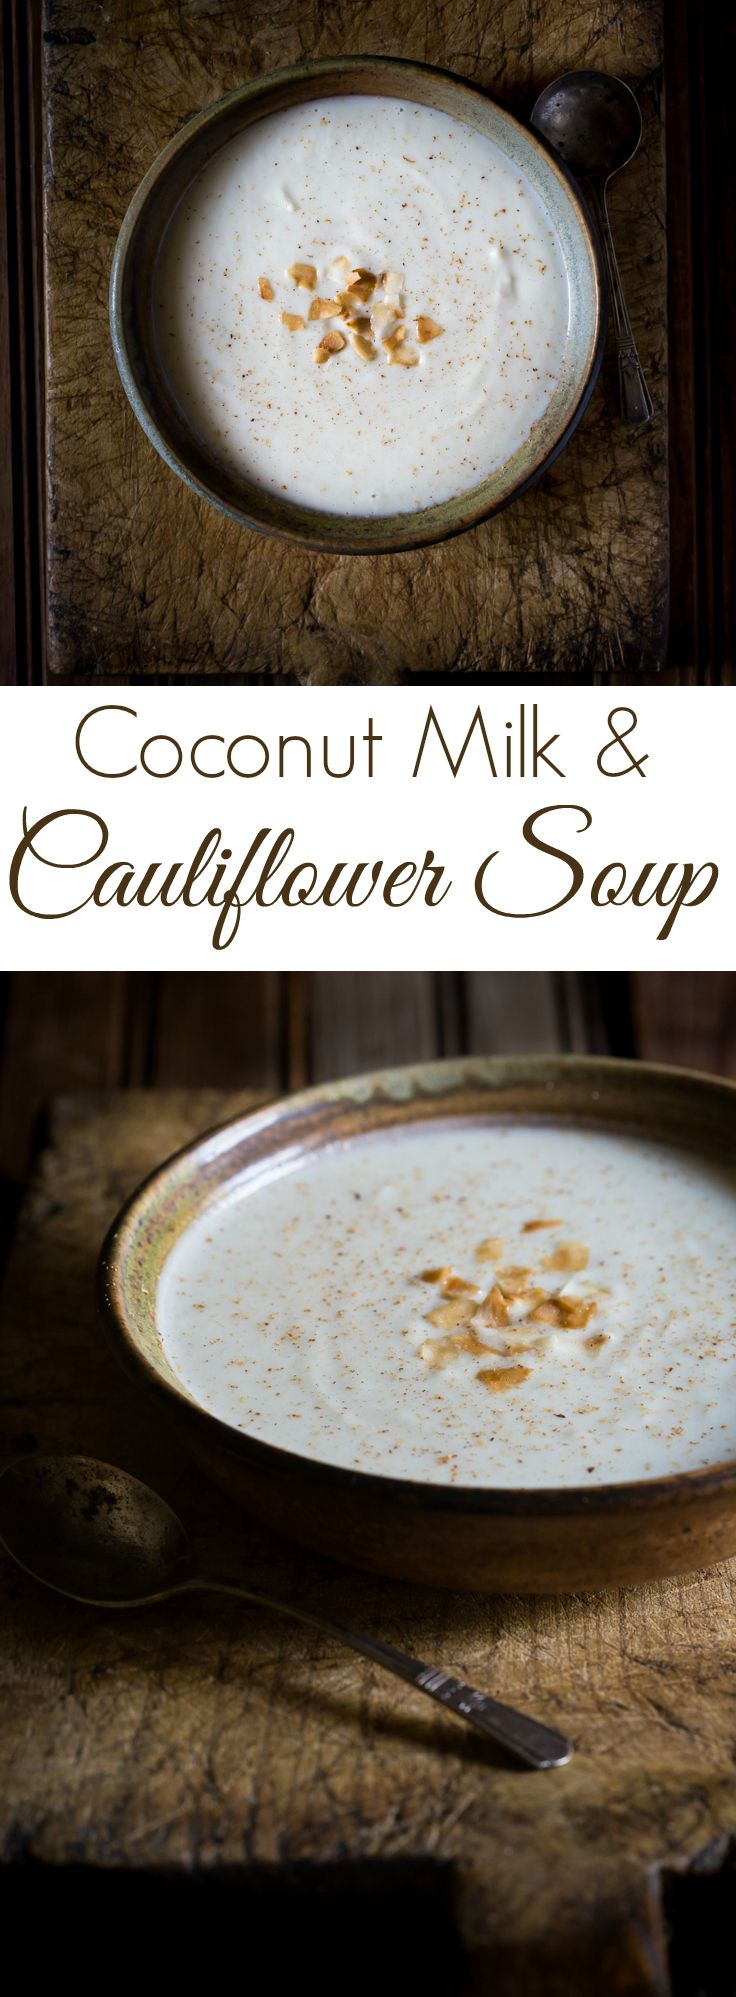 A fabulously delicious Cauliflower and Coconut Milk Soup with just a hint of nutmeg! | vegan | vegetarian | gluten free | dairy free | whole30 | paleo | primal | Visit noshtastic.com for more great recipes!